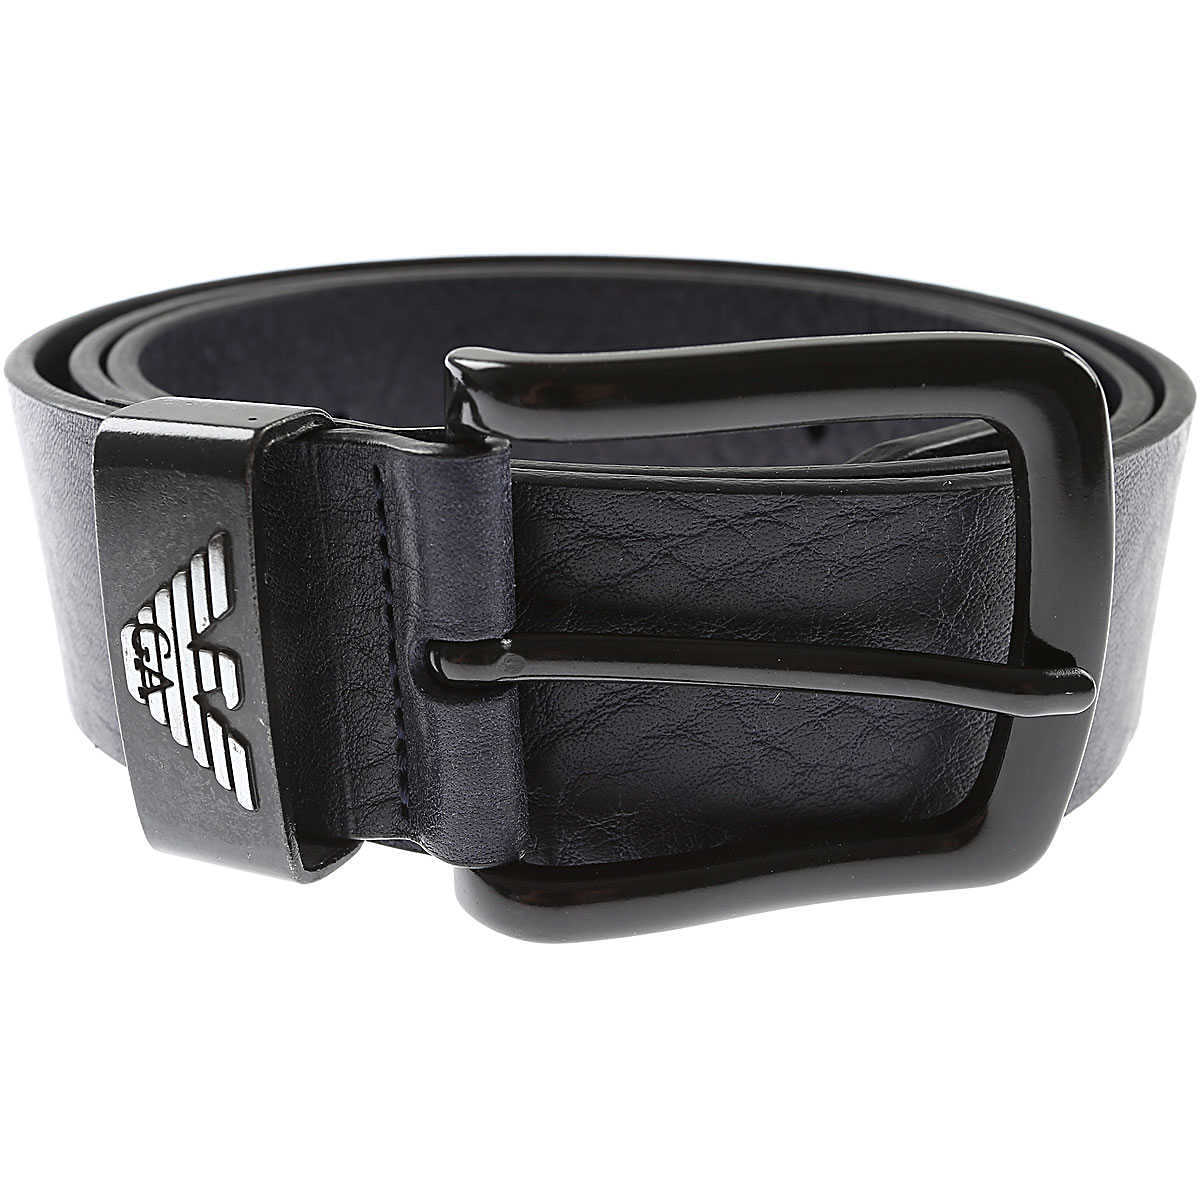 Emporio Armani Mens Belts Blue DK - GOOFASH - Mens BELTS